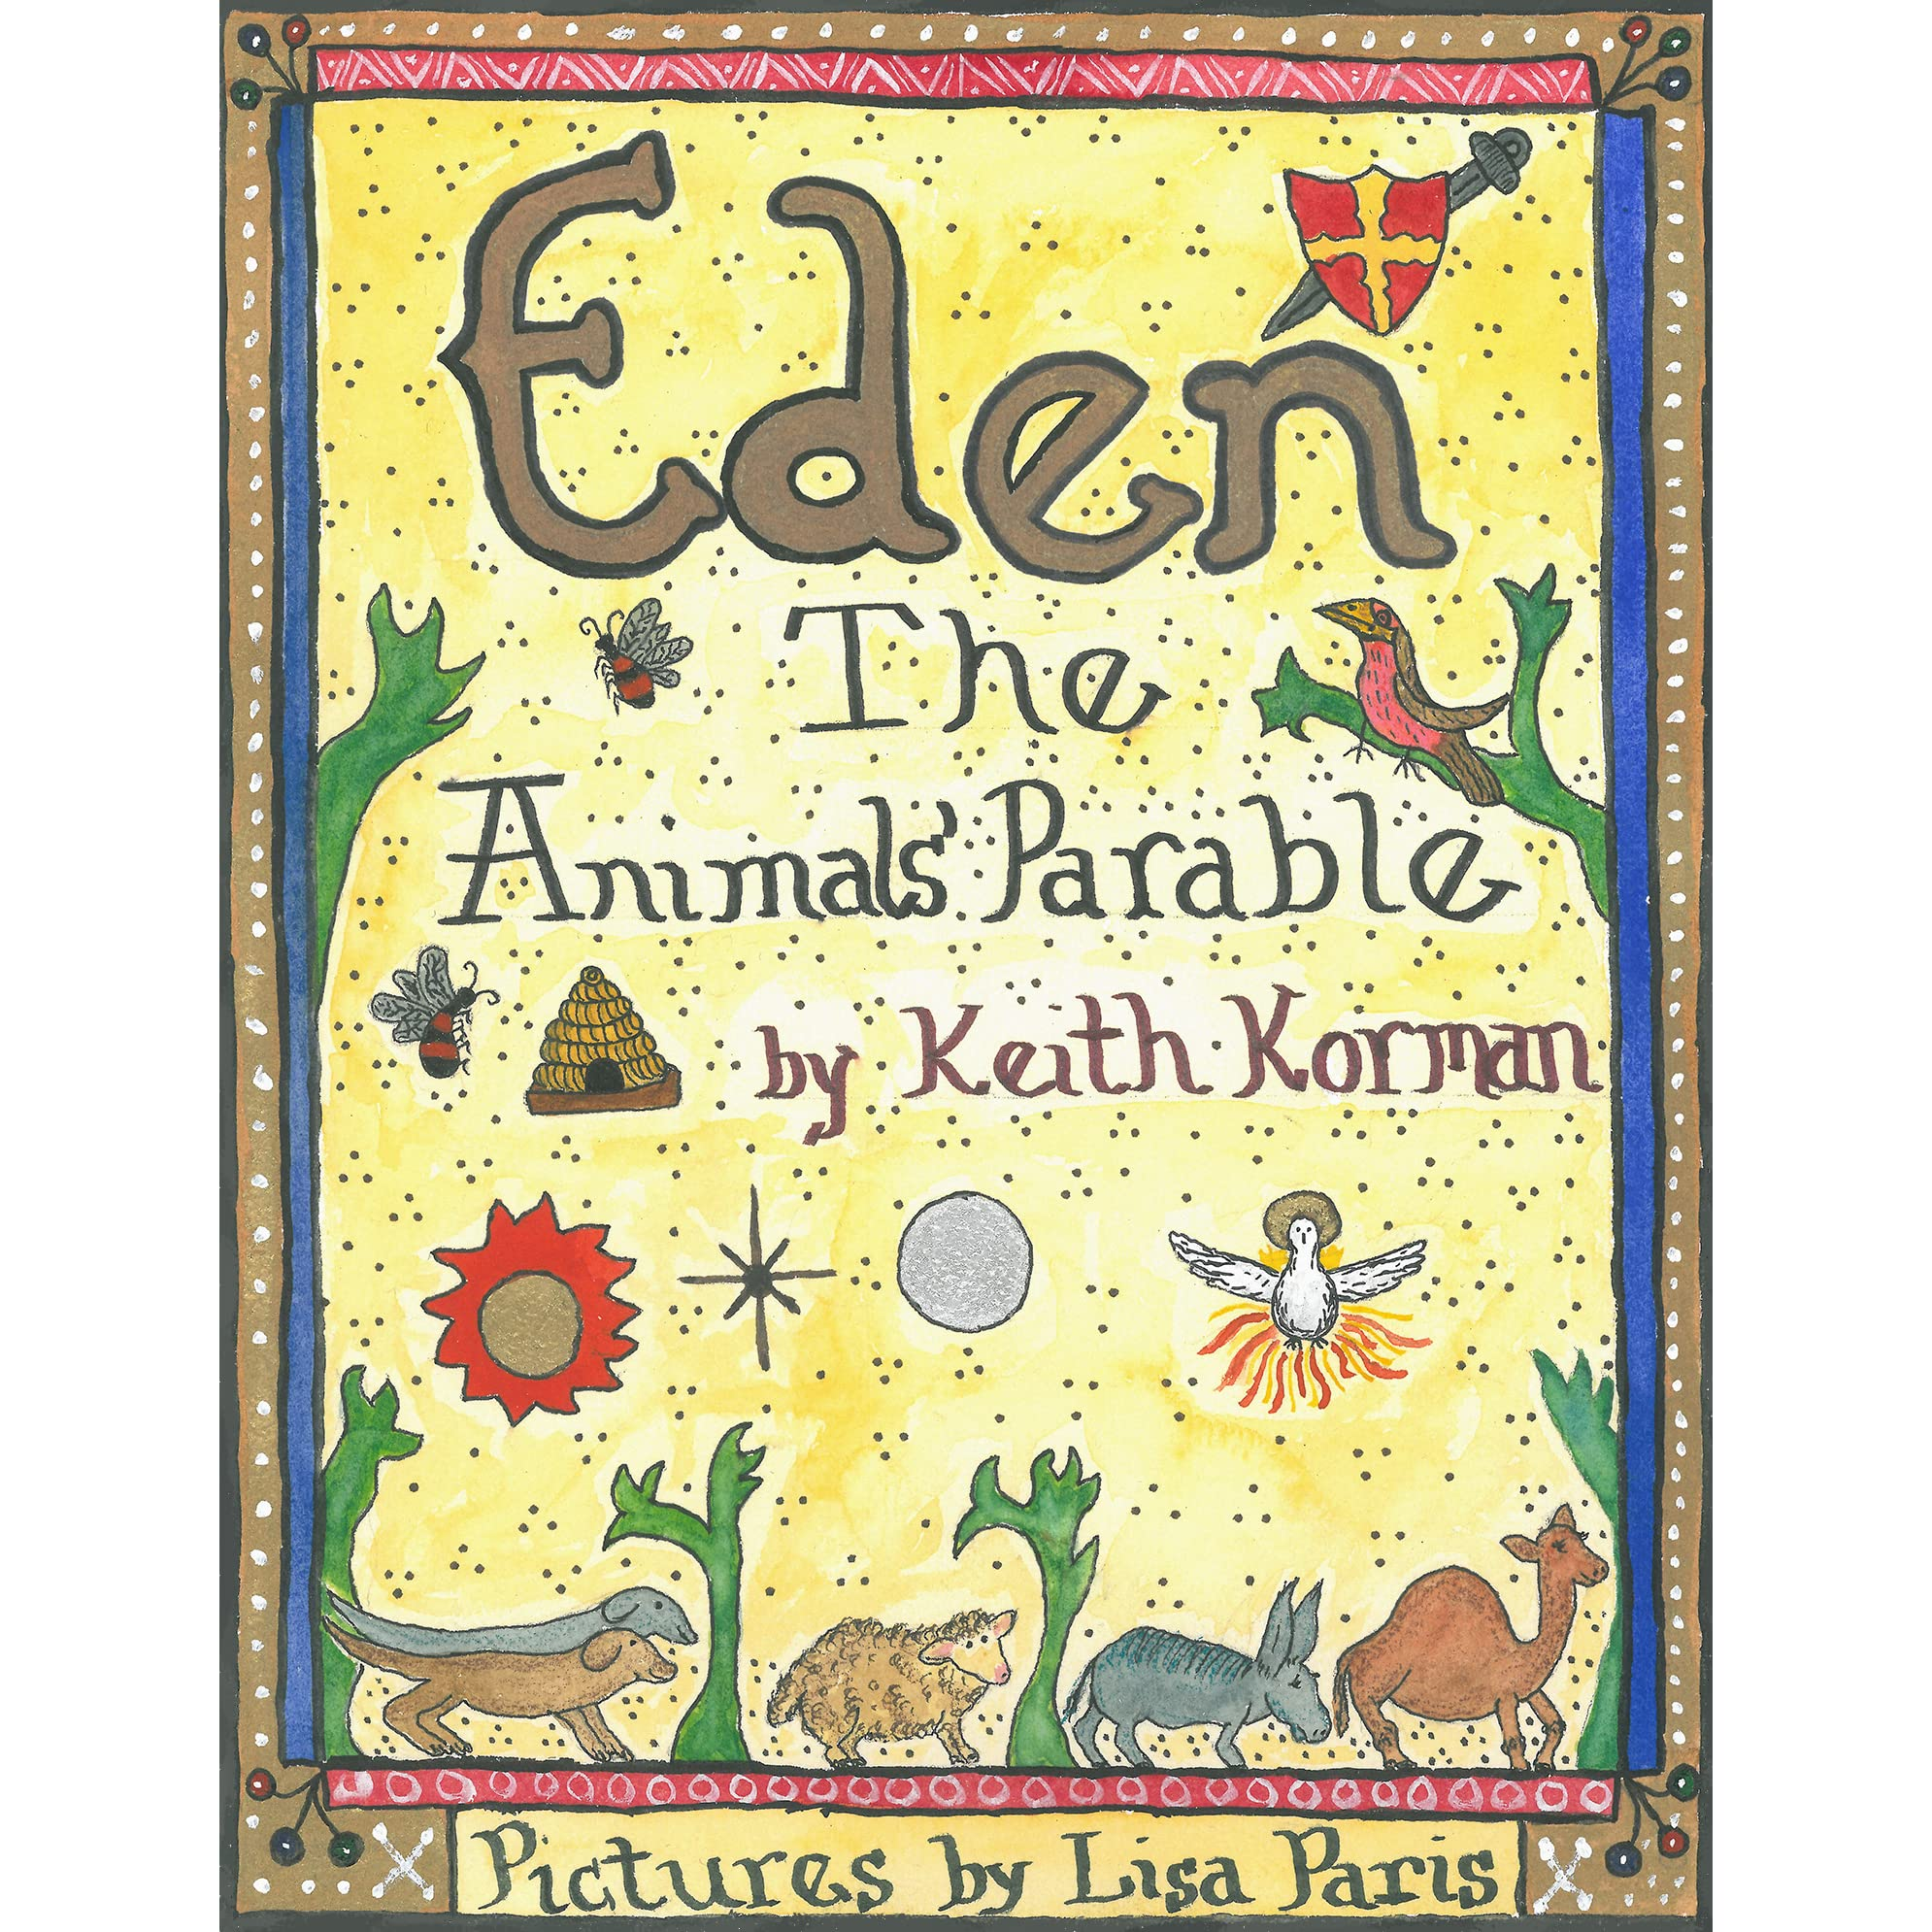 Children Of Eden Book Cover : Eden the animals parable by keith korman — reviews